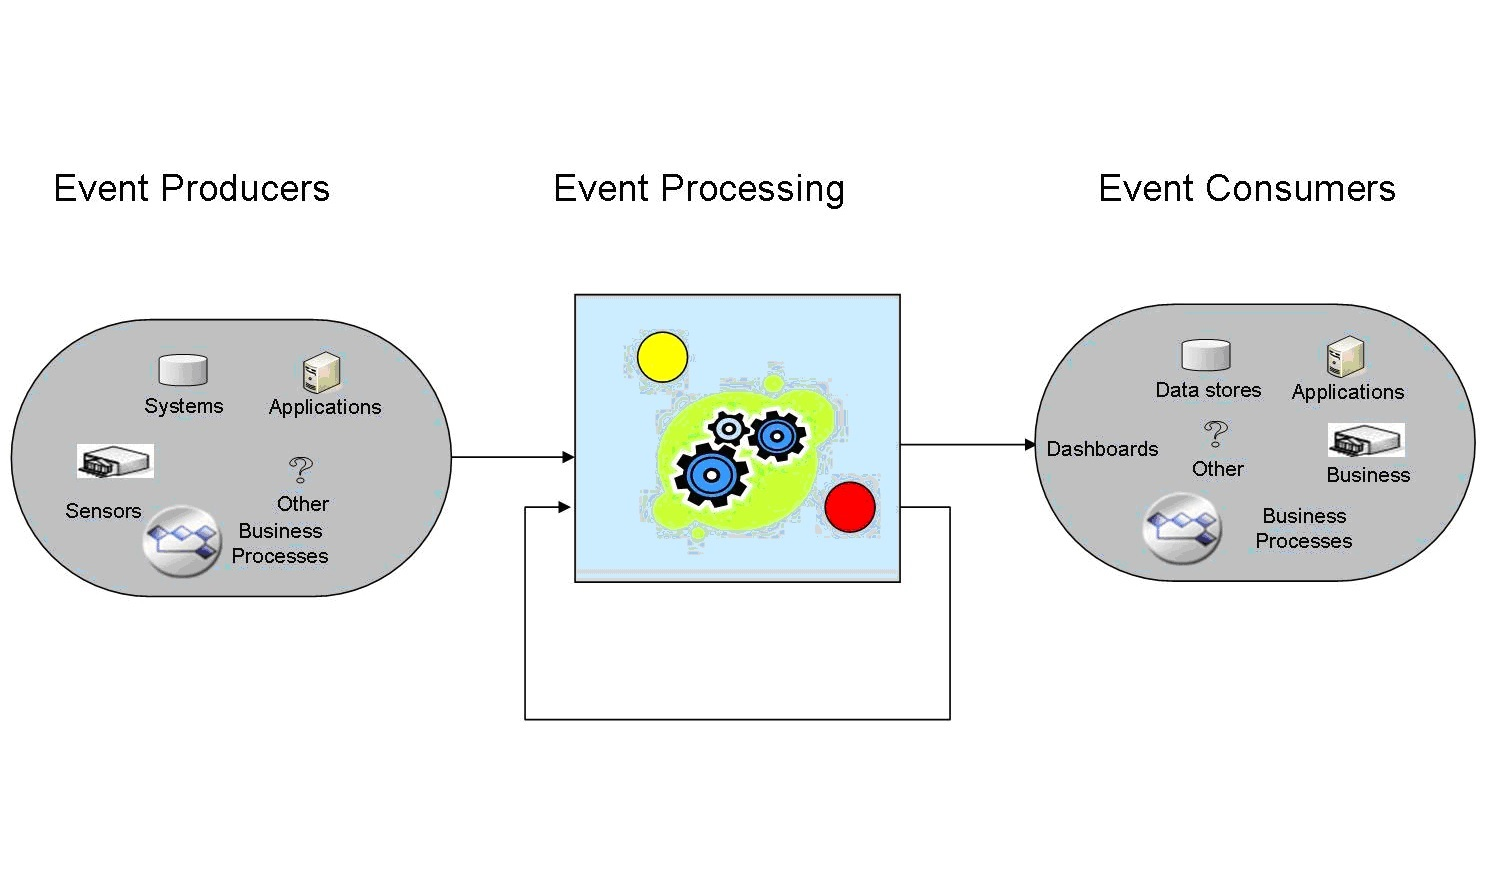 On microservices and event driven architectures rtinsights for Architecture 00